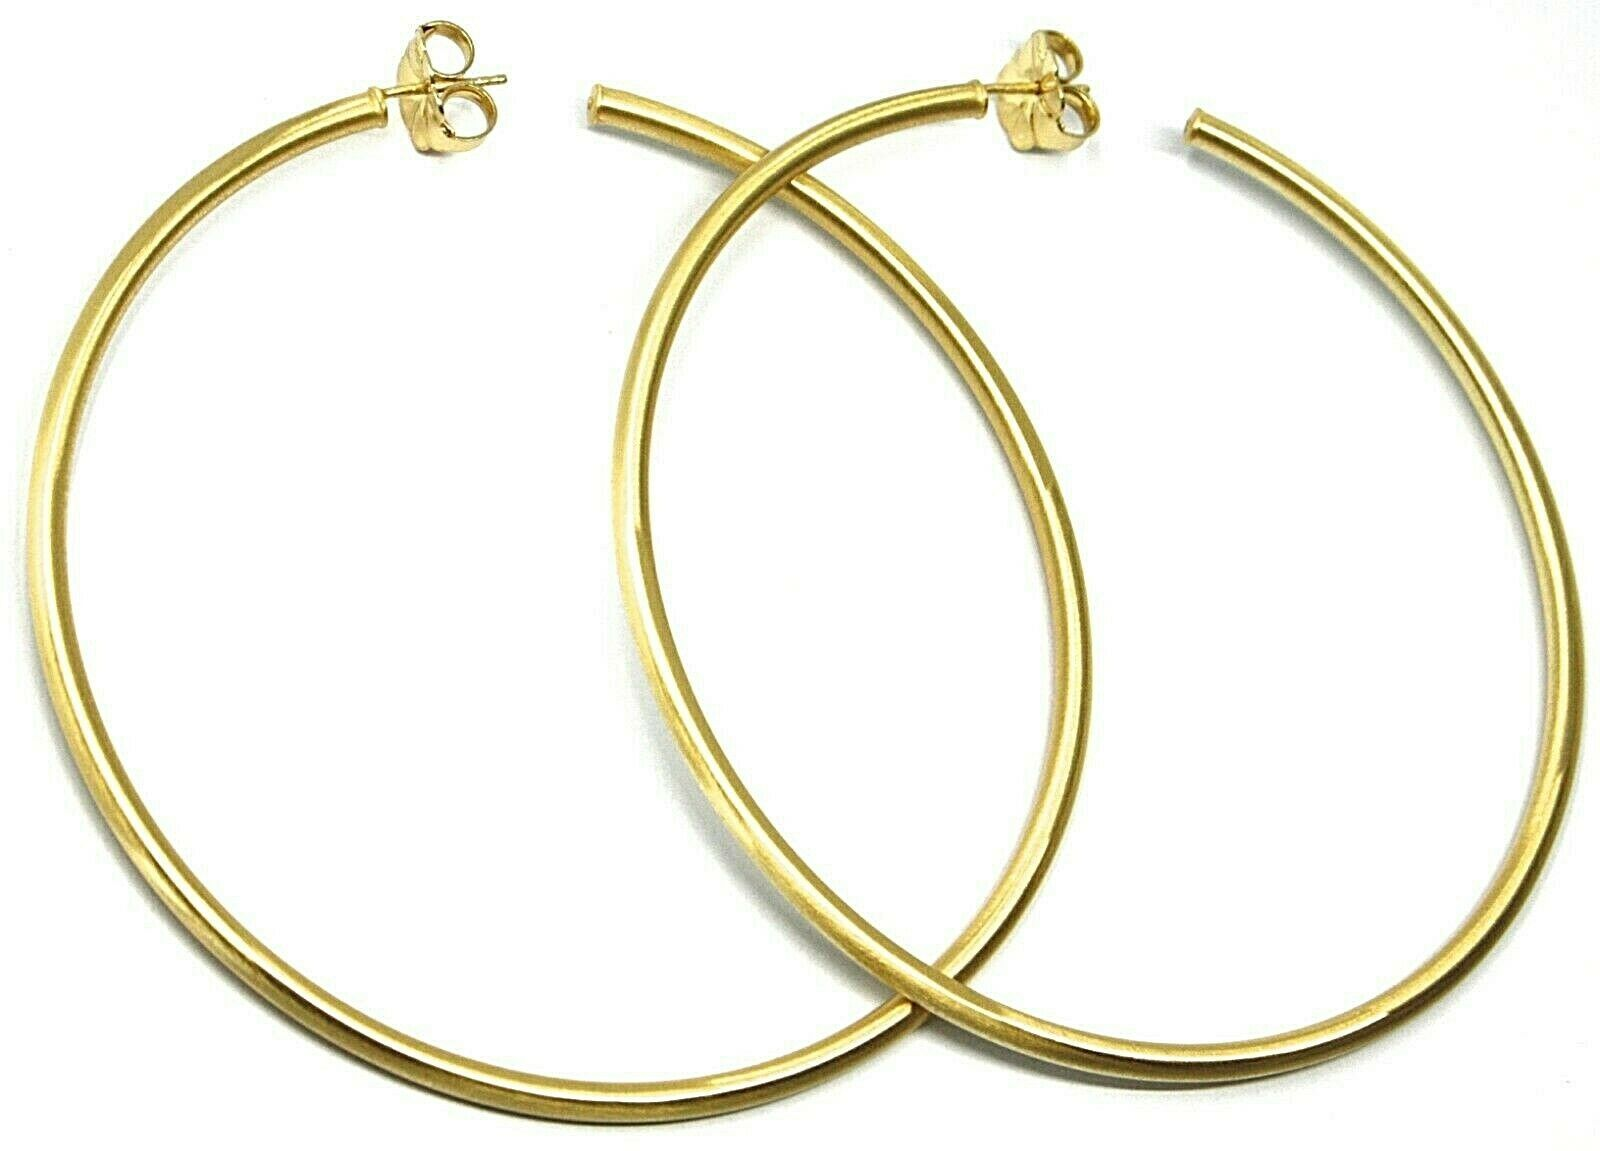 925 STERLING SILVER CIRCLE HOOPS BIG EARRINGS 8.5cm x 3mm YELLOW SATIN FINISH